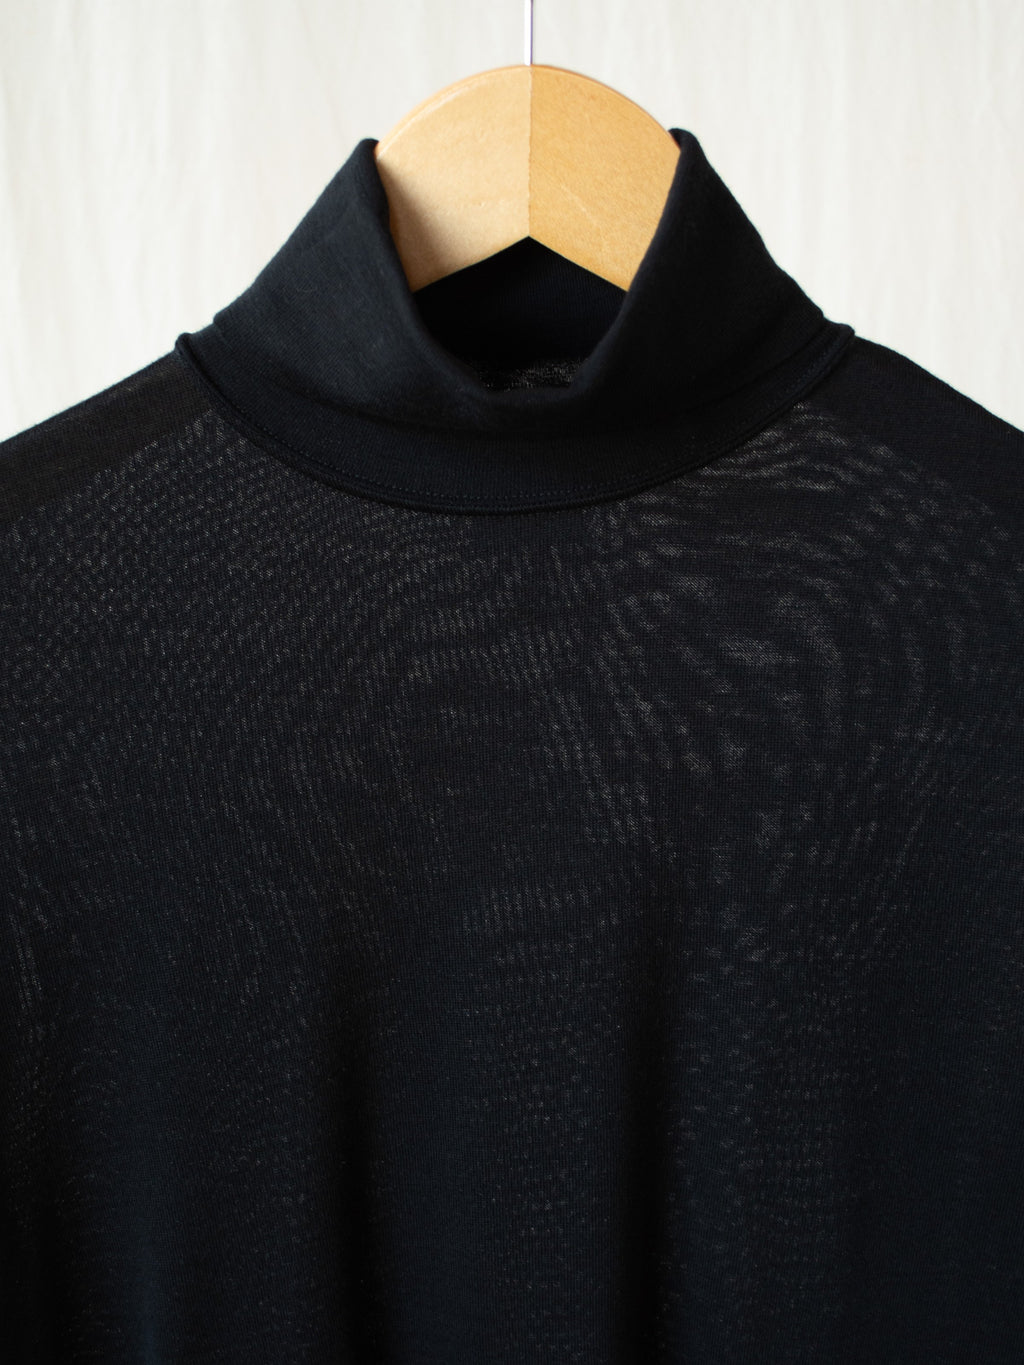 Namu Shop - Phlannel Wool Turtleneck T-Shirt - Black